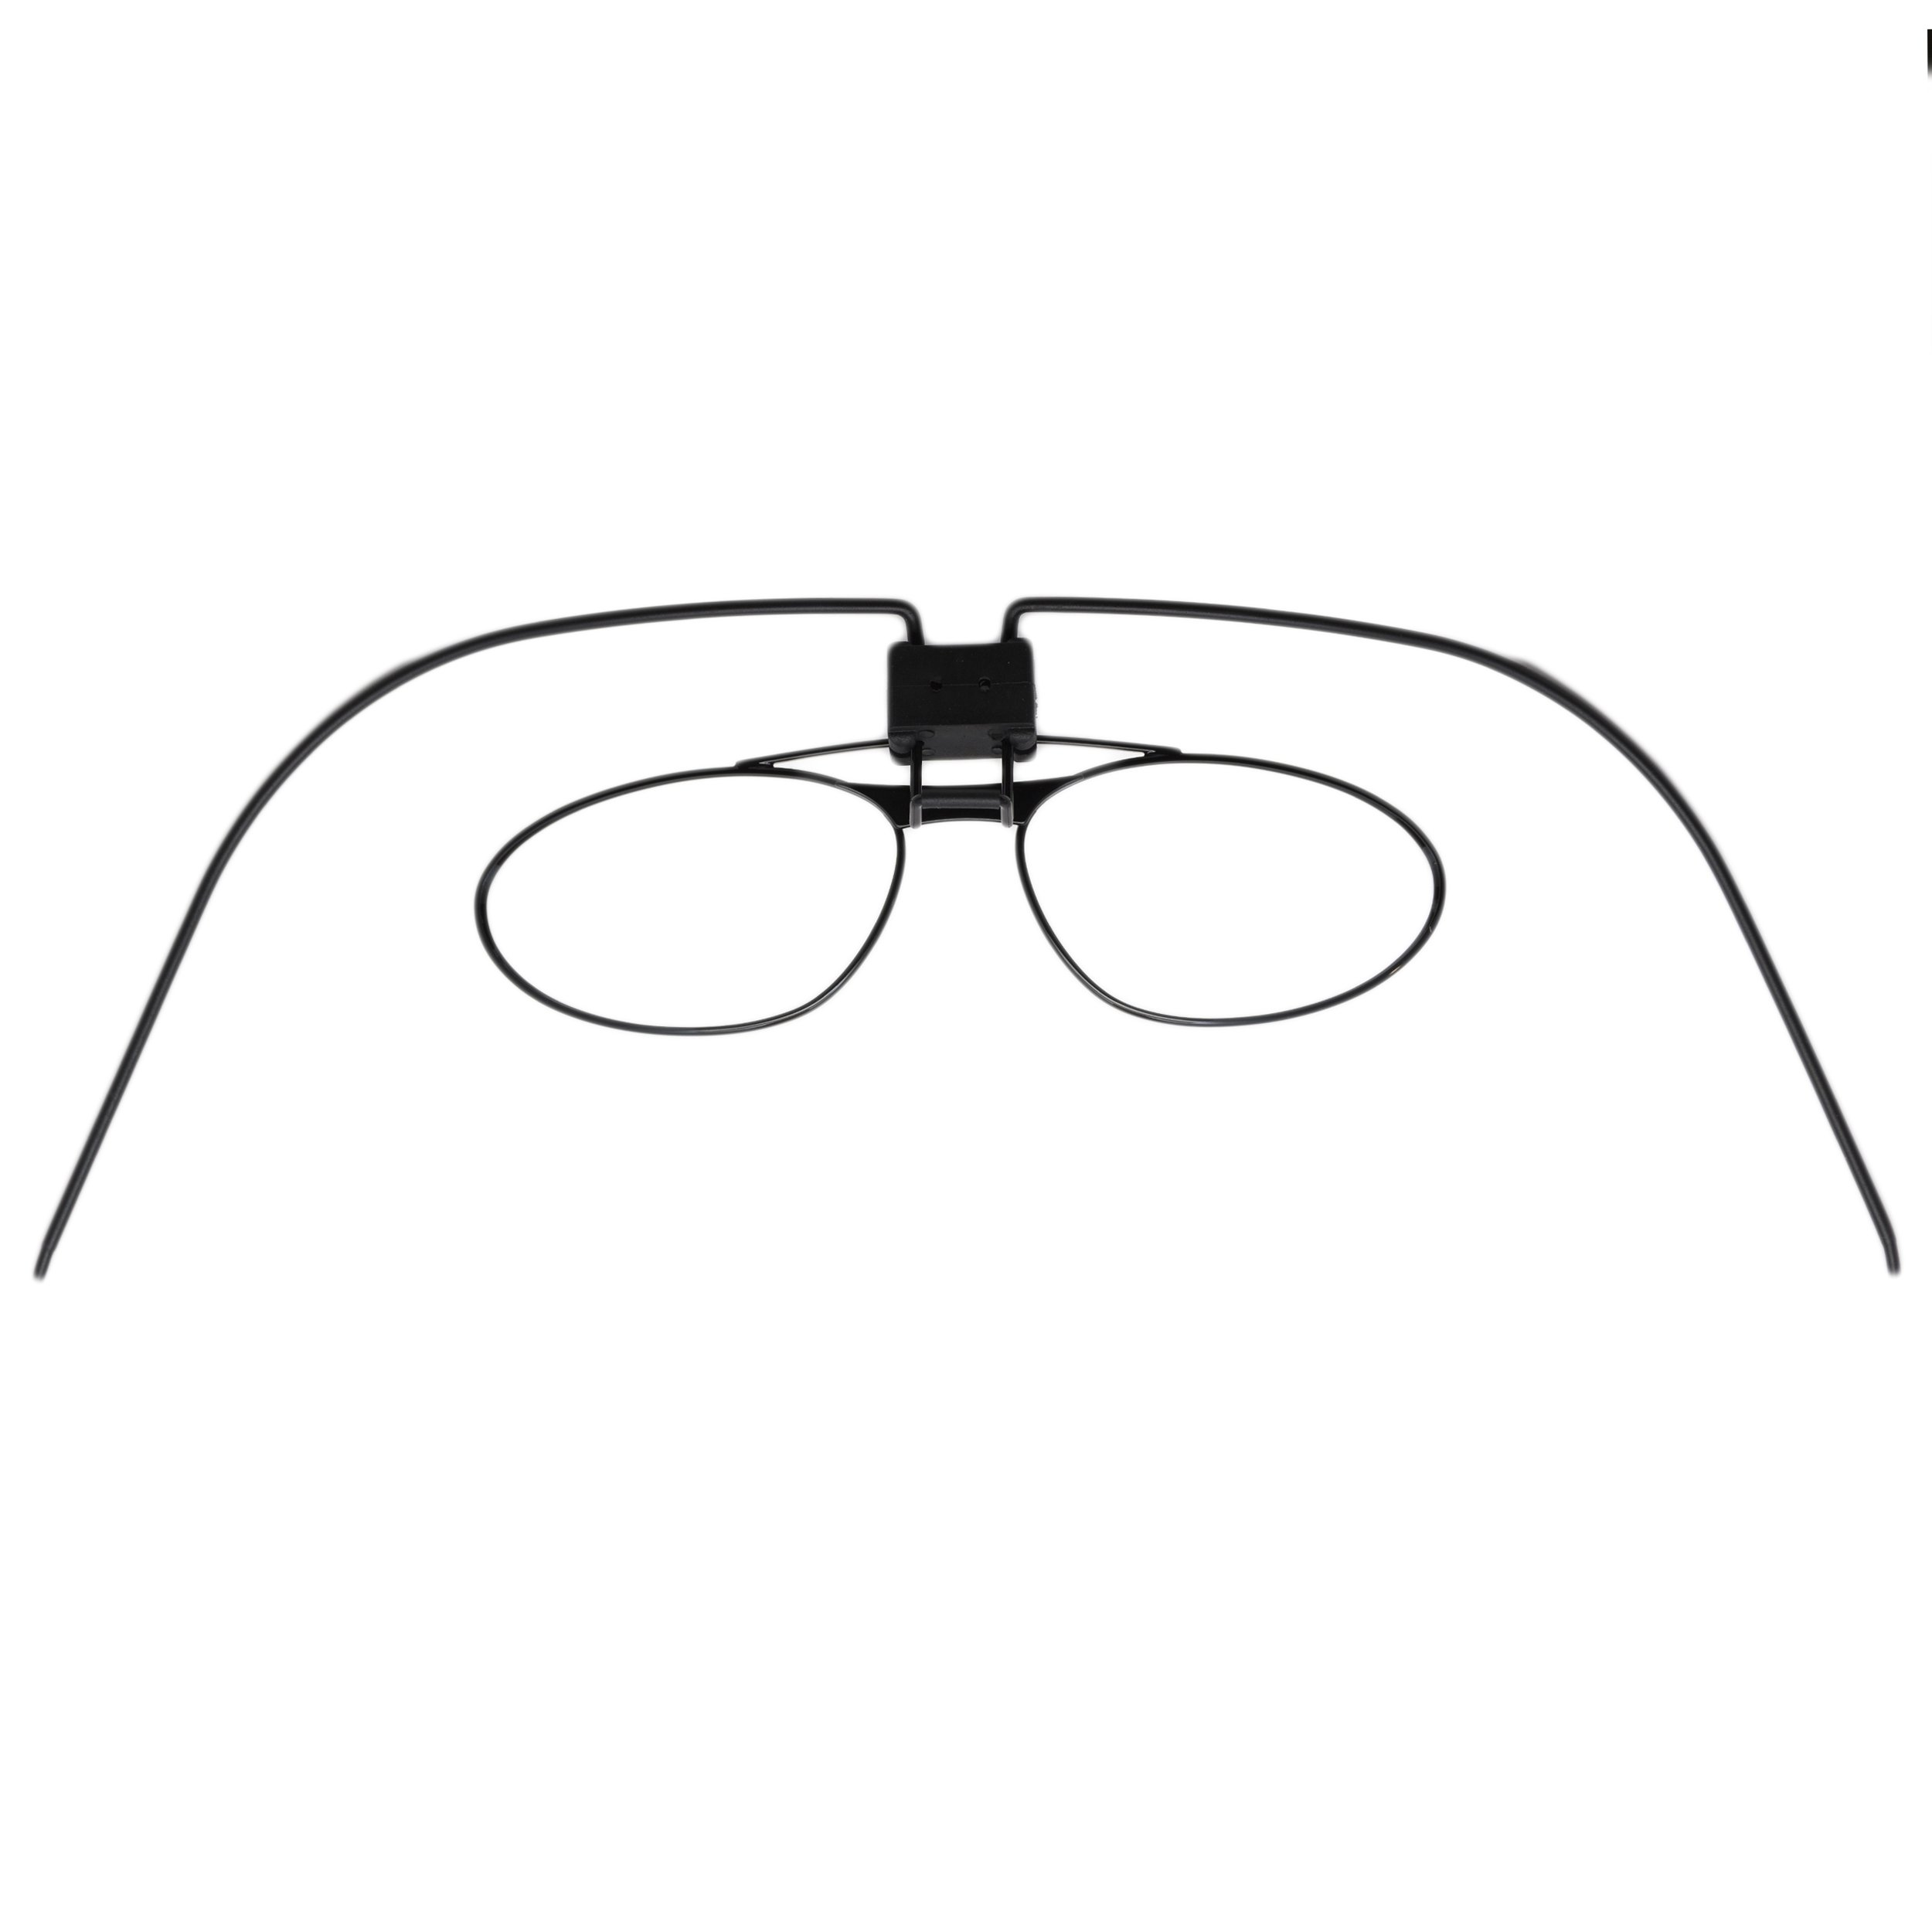 SafeVision SVSK 300 - Replacement Part for Scott 200372 Spectacle Kit/ SCBA Insert